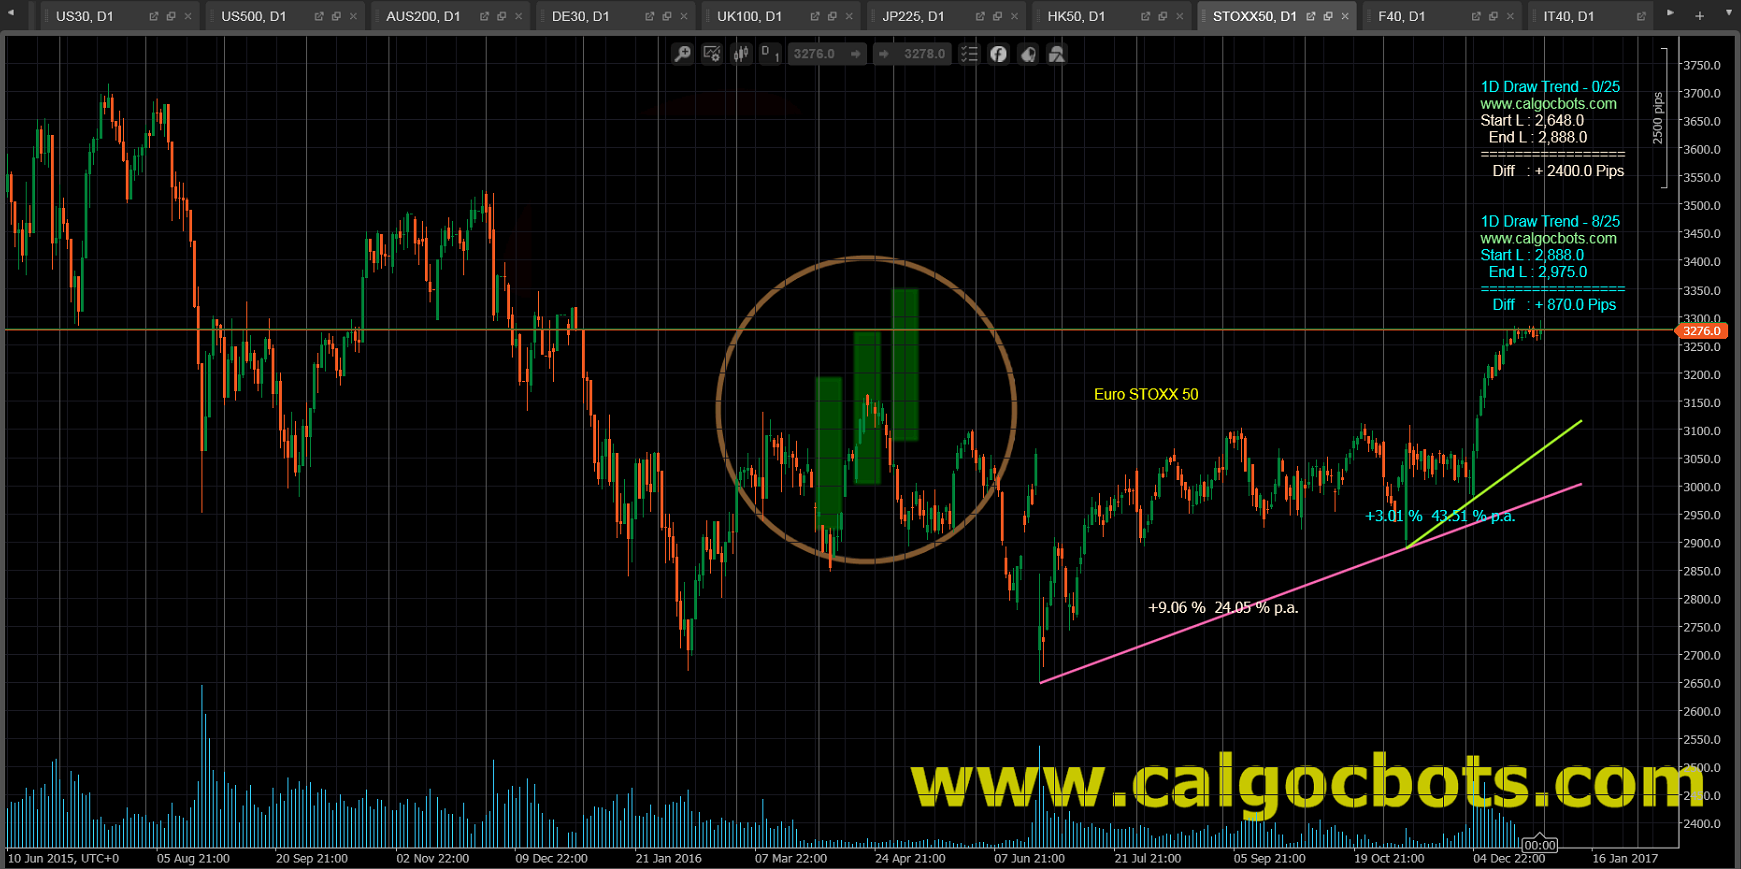 1D Draw Trend - cAlgo and cTrader Indicator - Euro Stoxx 50 Index Europe leading Blue-chip index Daily Chart - 004